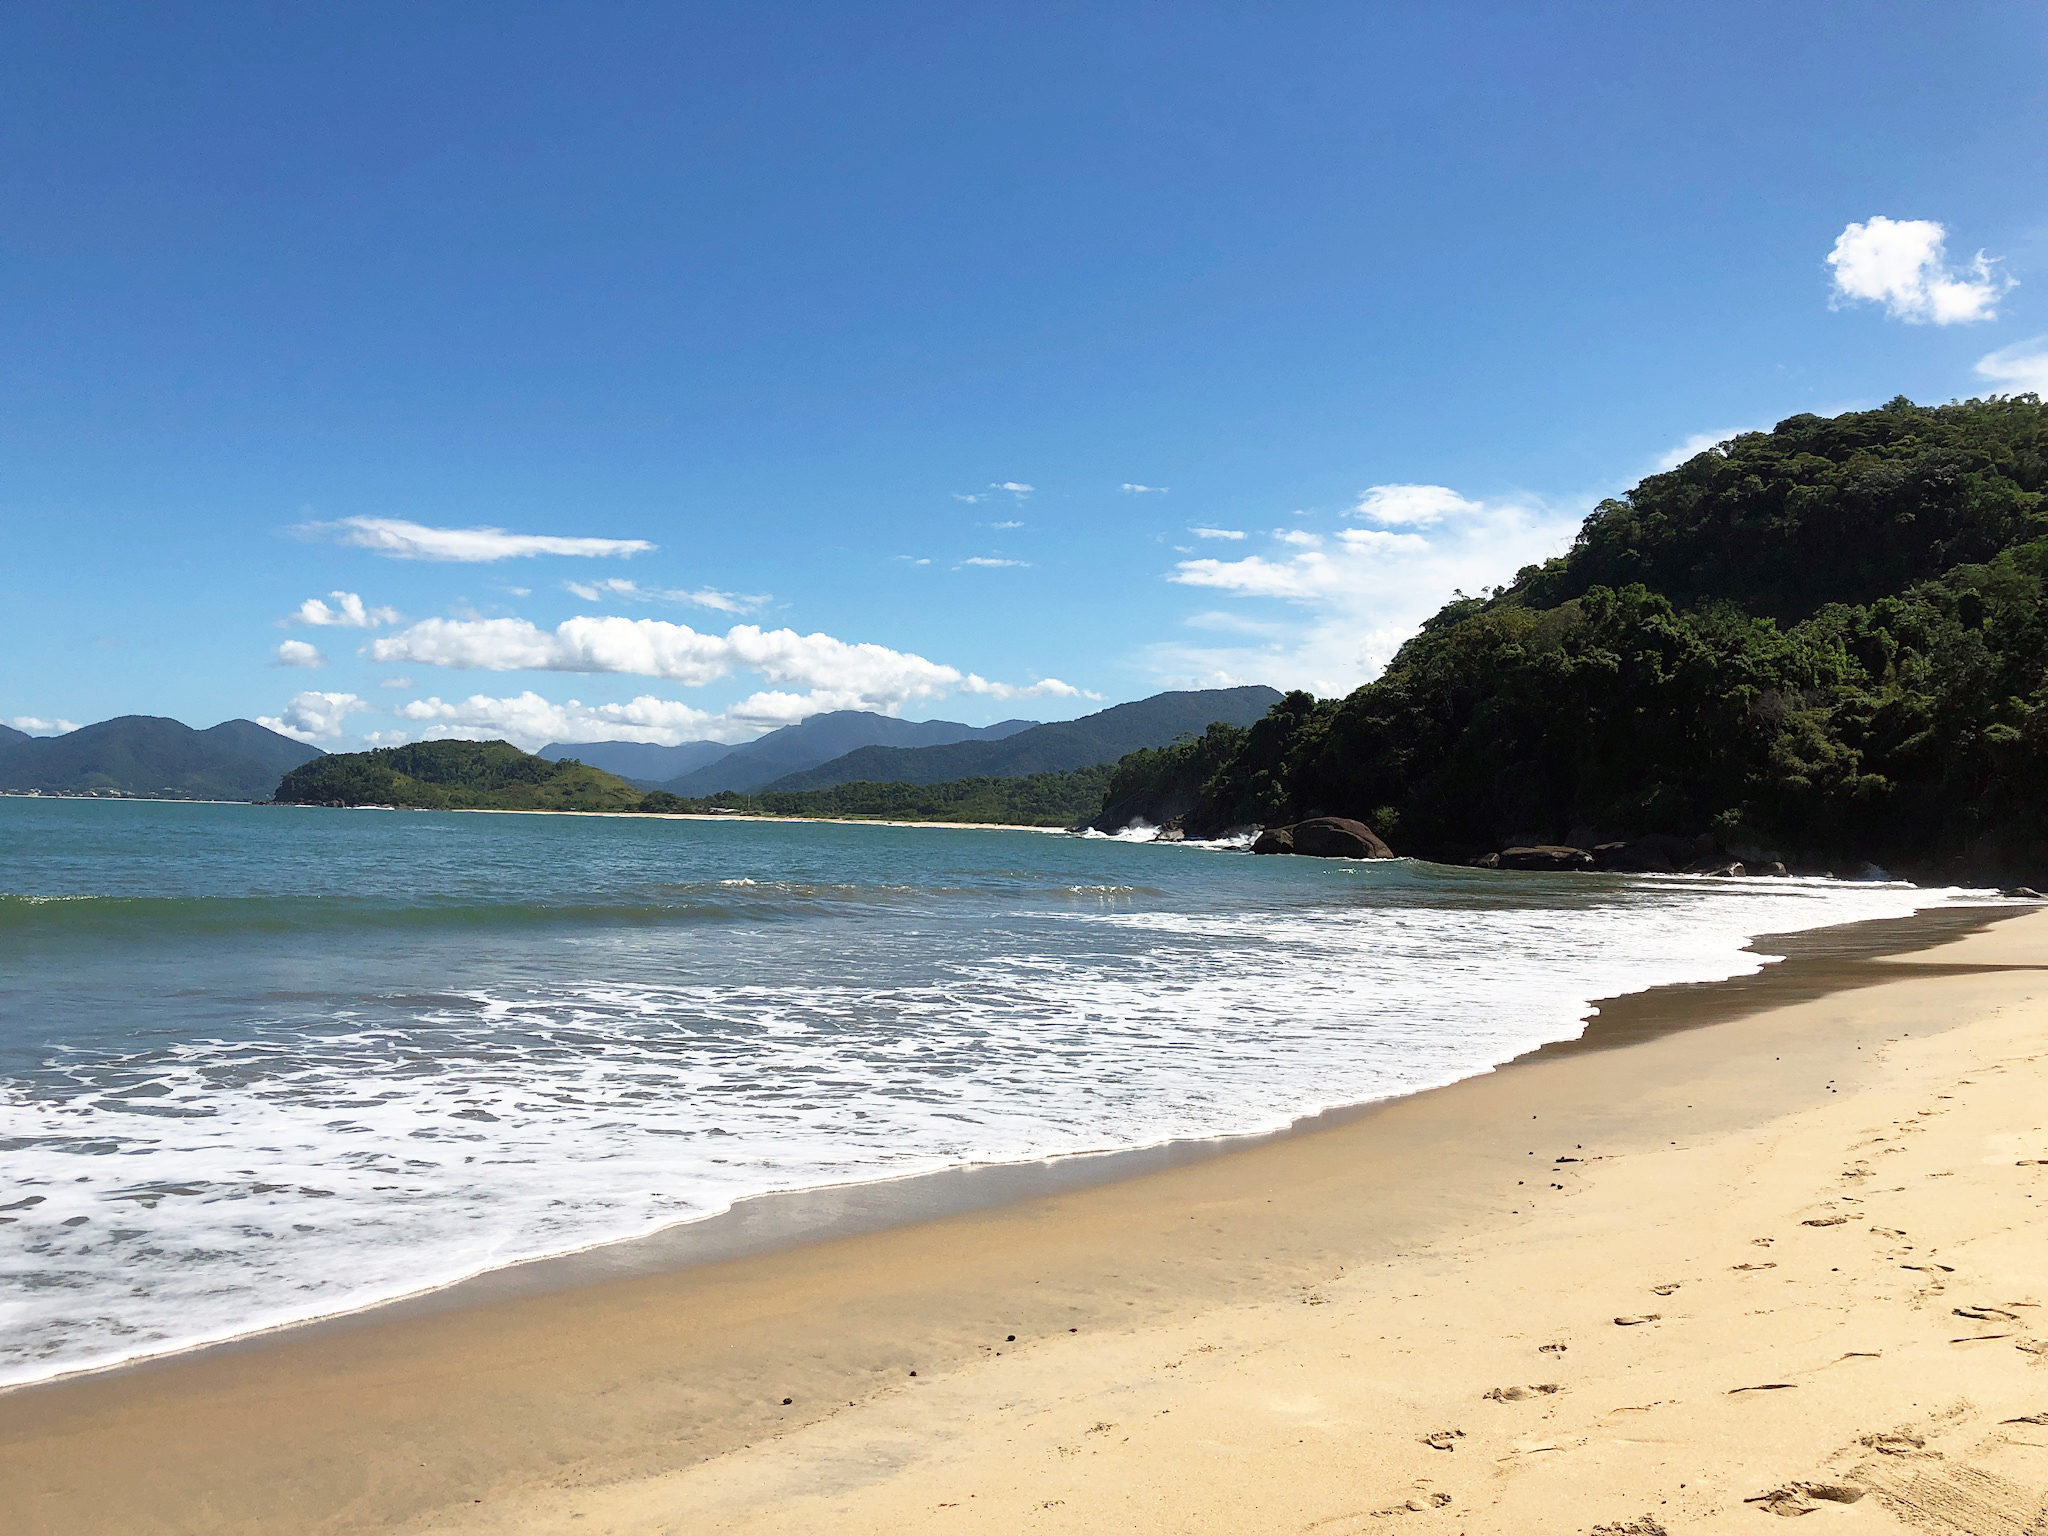 560e478ec331 Three days in Ubatuba, Brasil - a beach lover's haven! - Blended Journeys